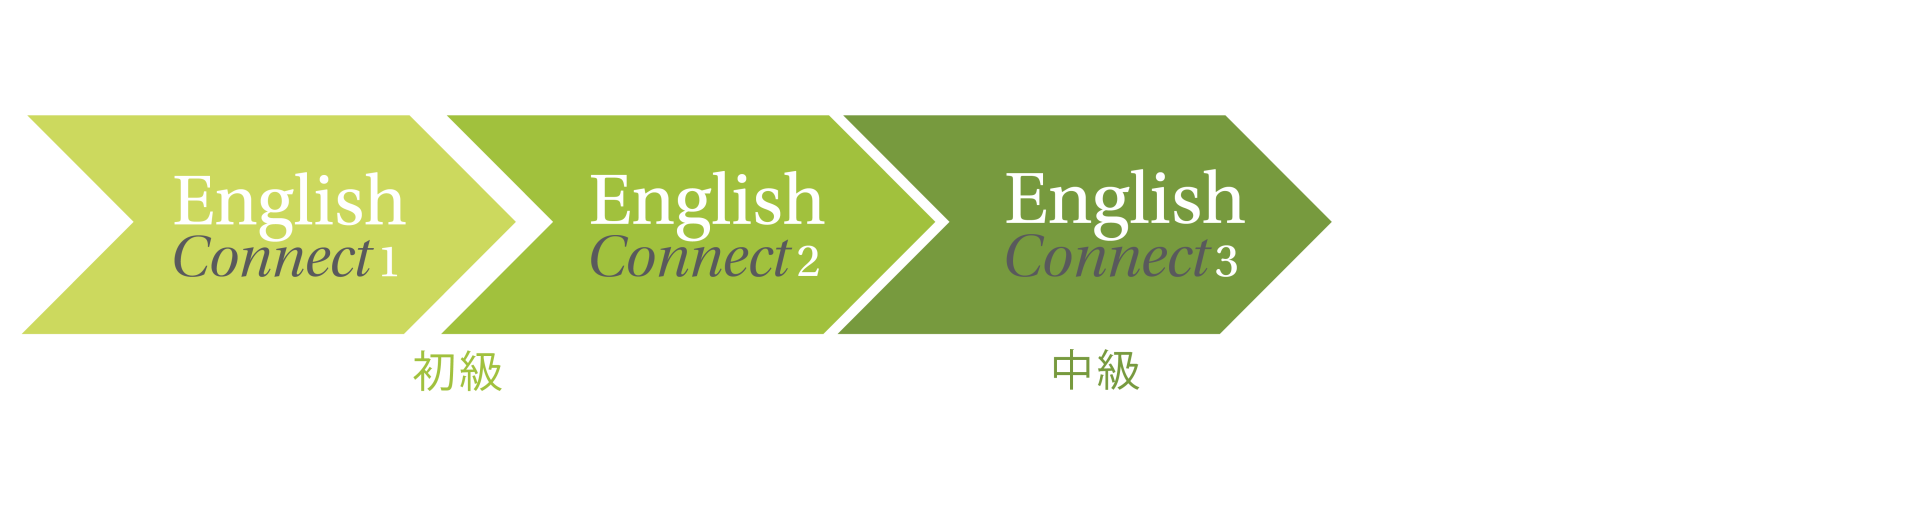 EnglishConnect山形模様のアイコン